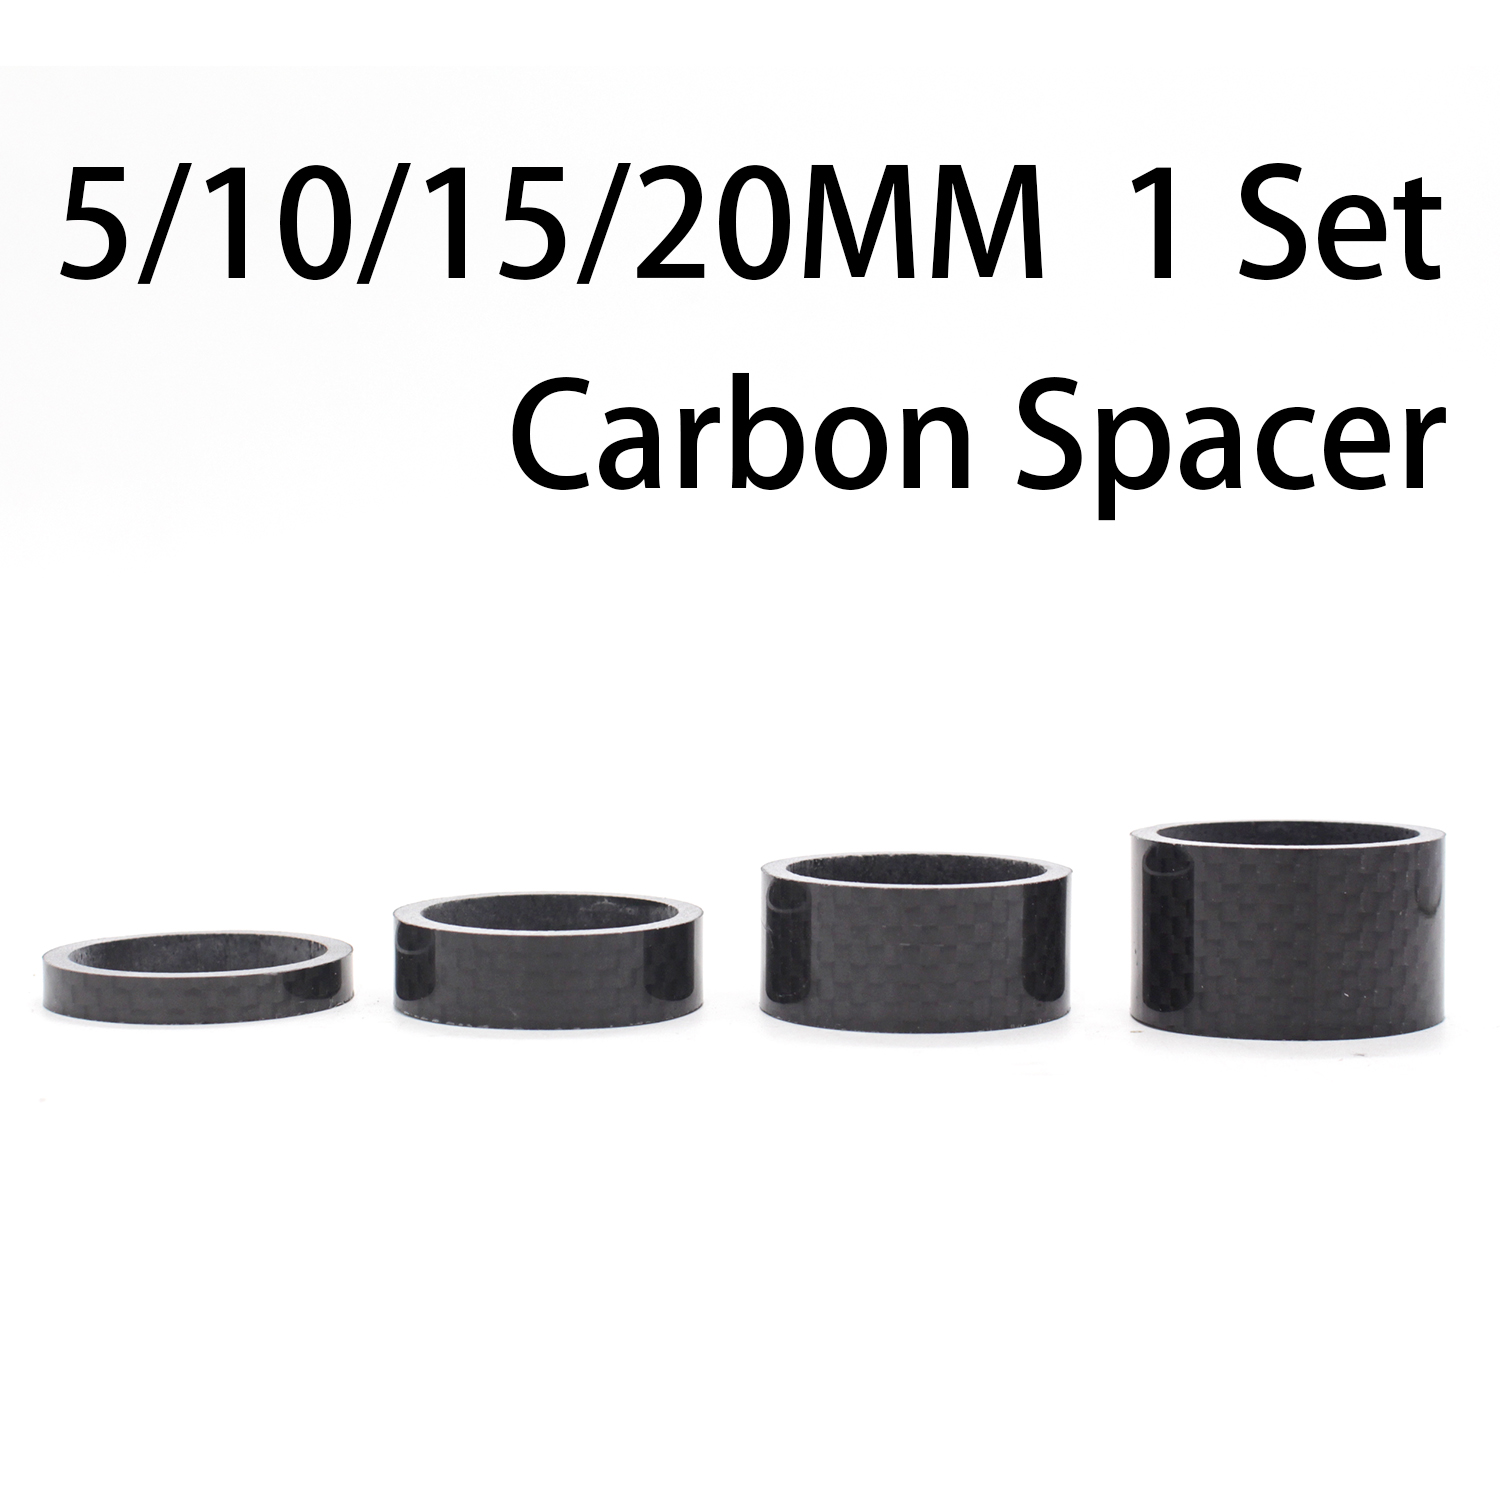 4PCS Full Carbon Fiber Bicycle Carbon Spacer 28.6-31.8mm OD2 Headset Parts Cycling Washer Bike Bicycle Headset Stem Spacers